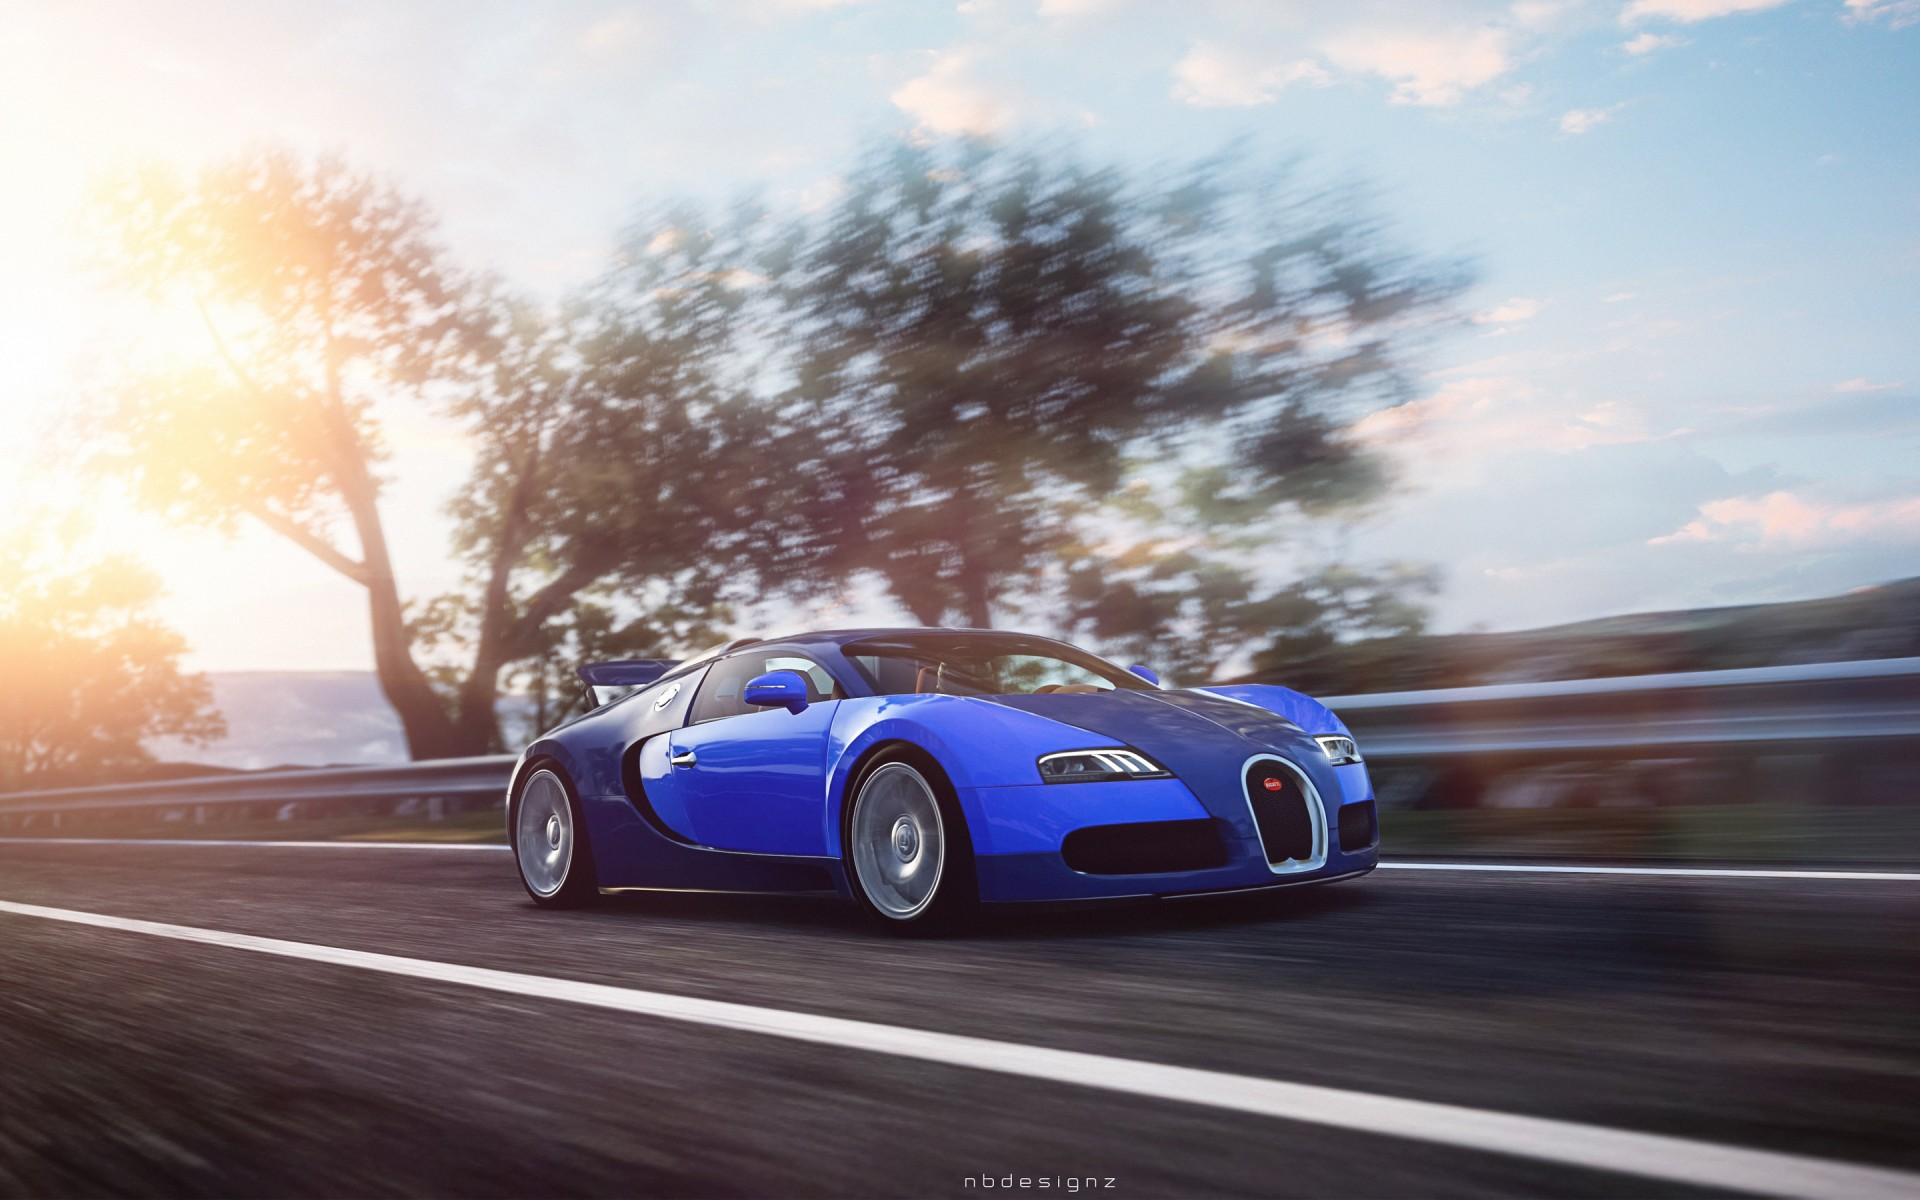 Bugatti Veyron EB 16 4 Gran Turismo 6 Wallpaper HD Car 1920x1200